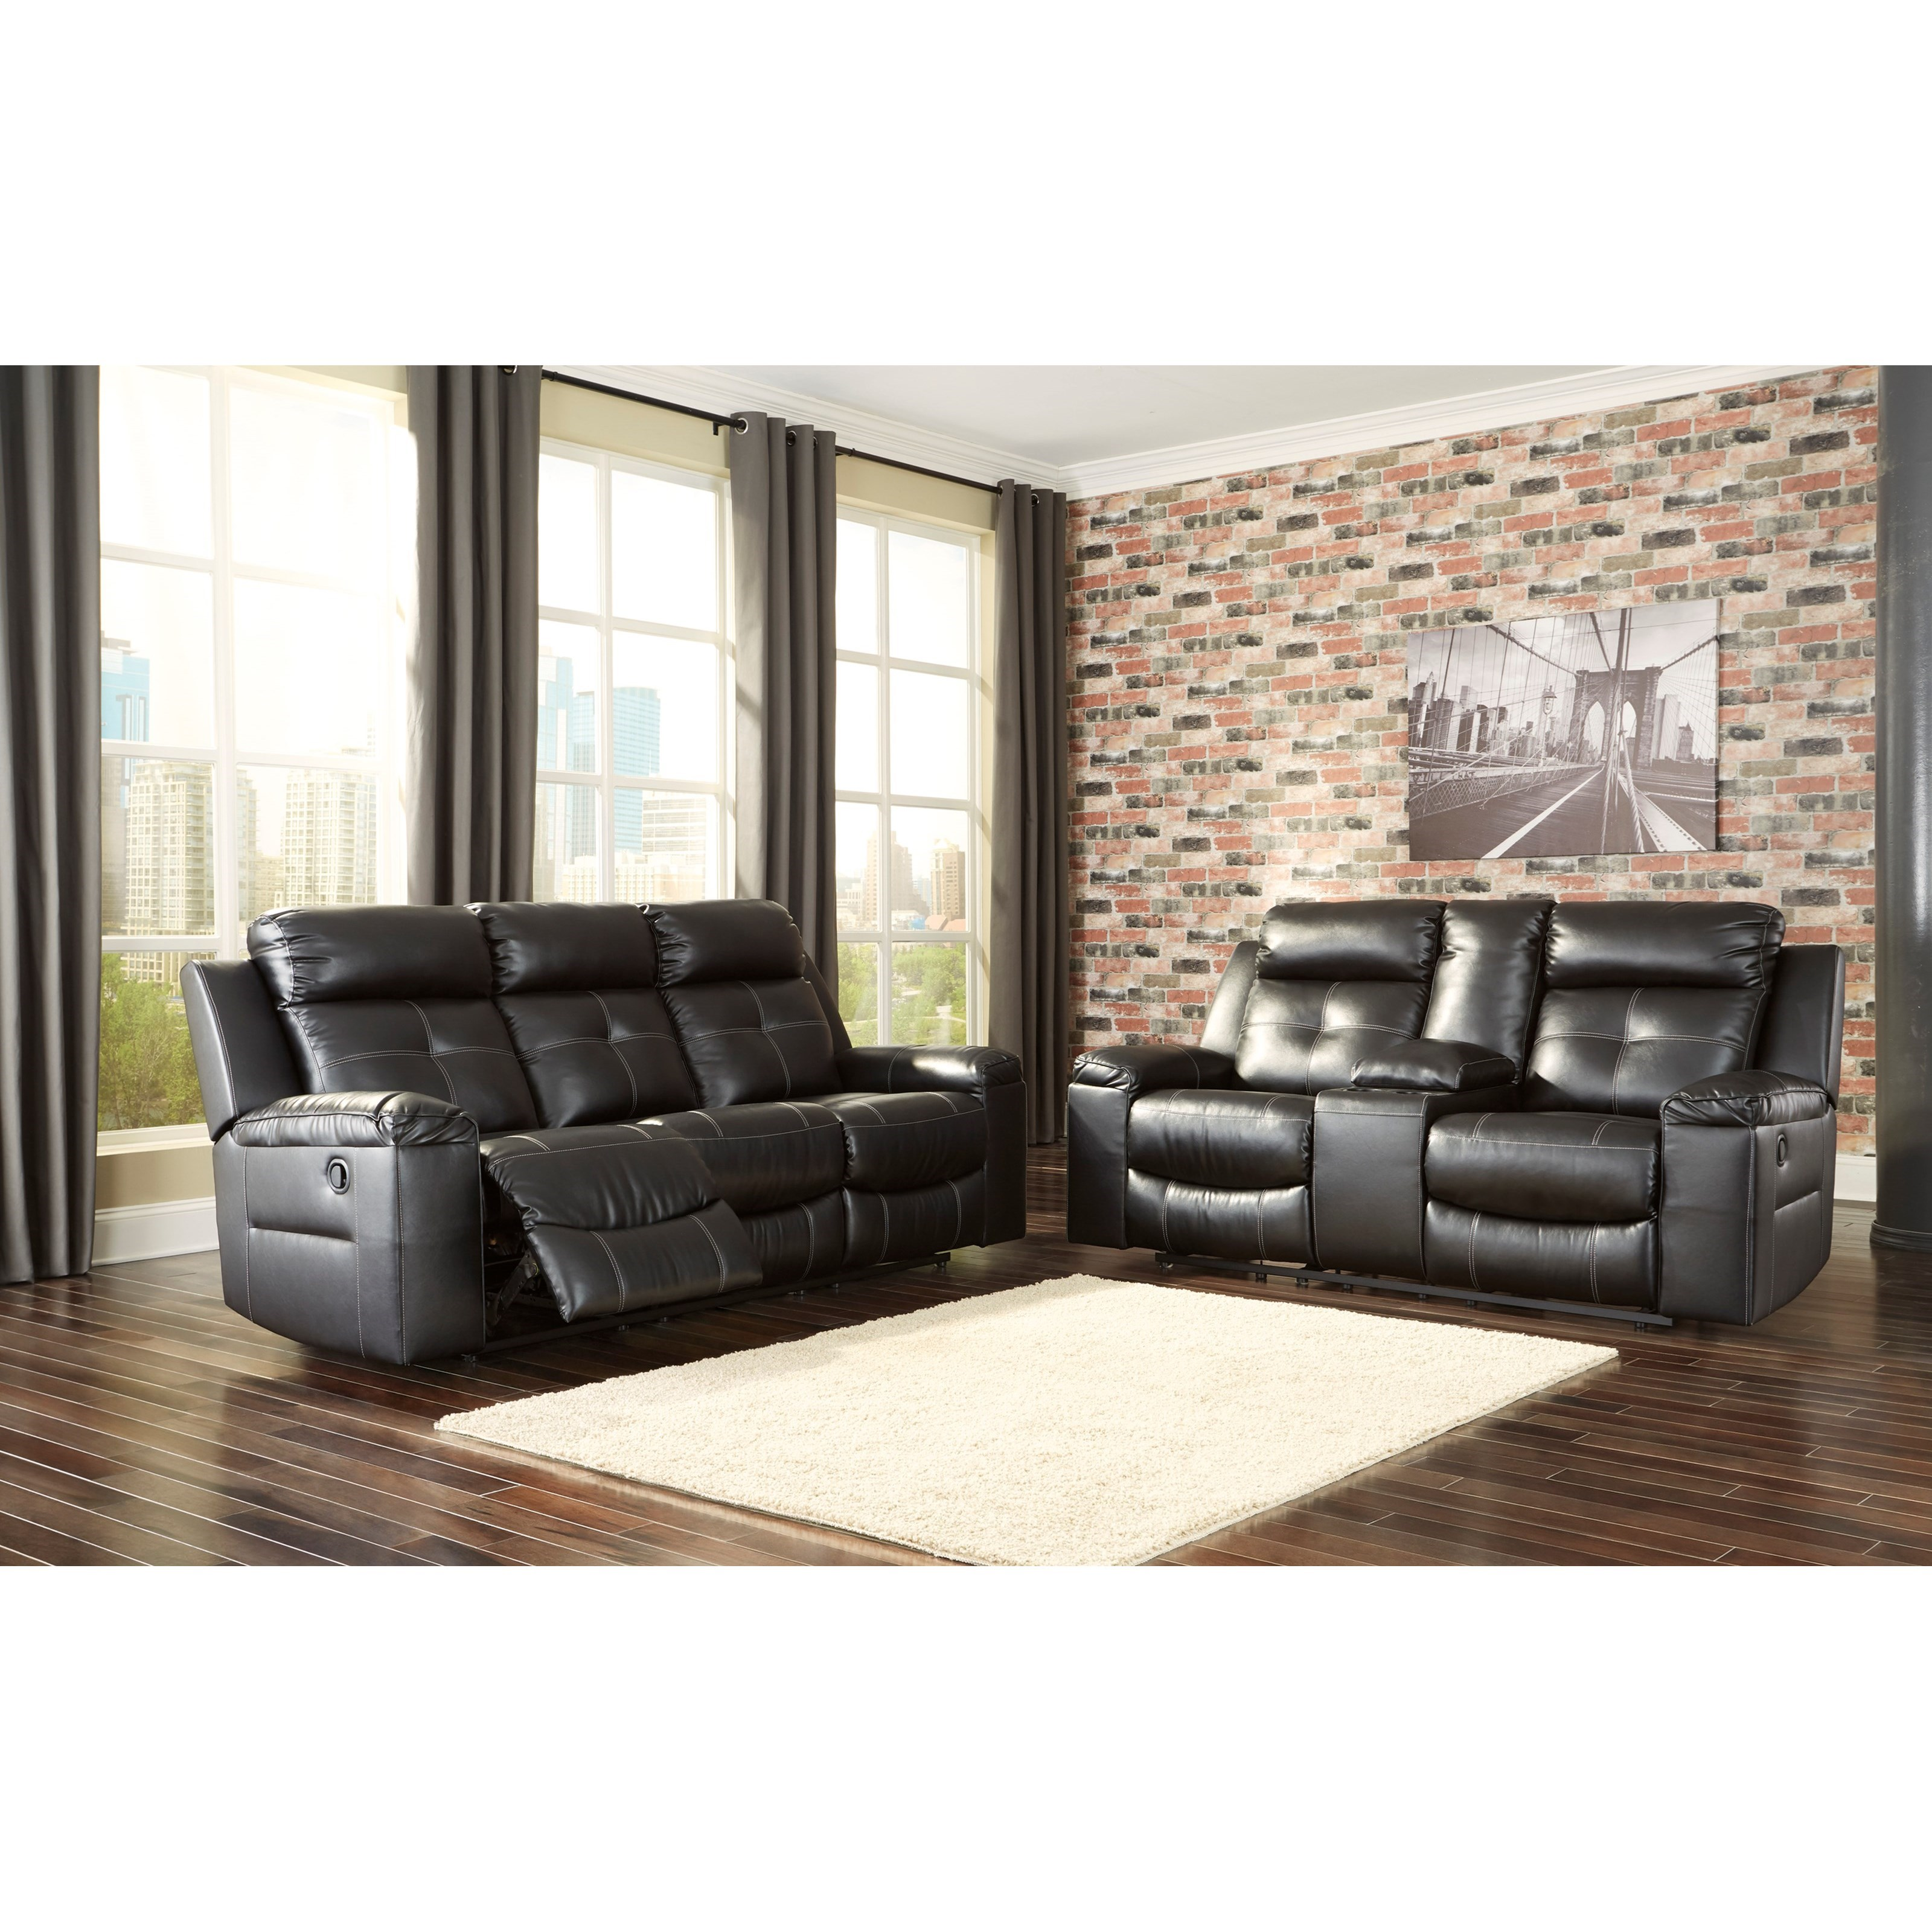 Signature Design By Ashley Kempten Reclining Living Room